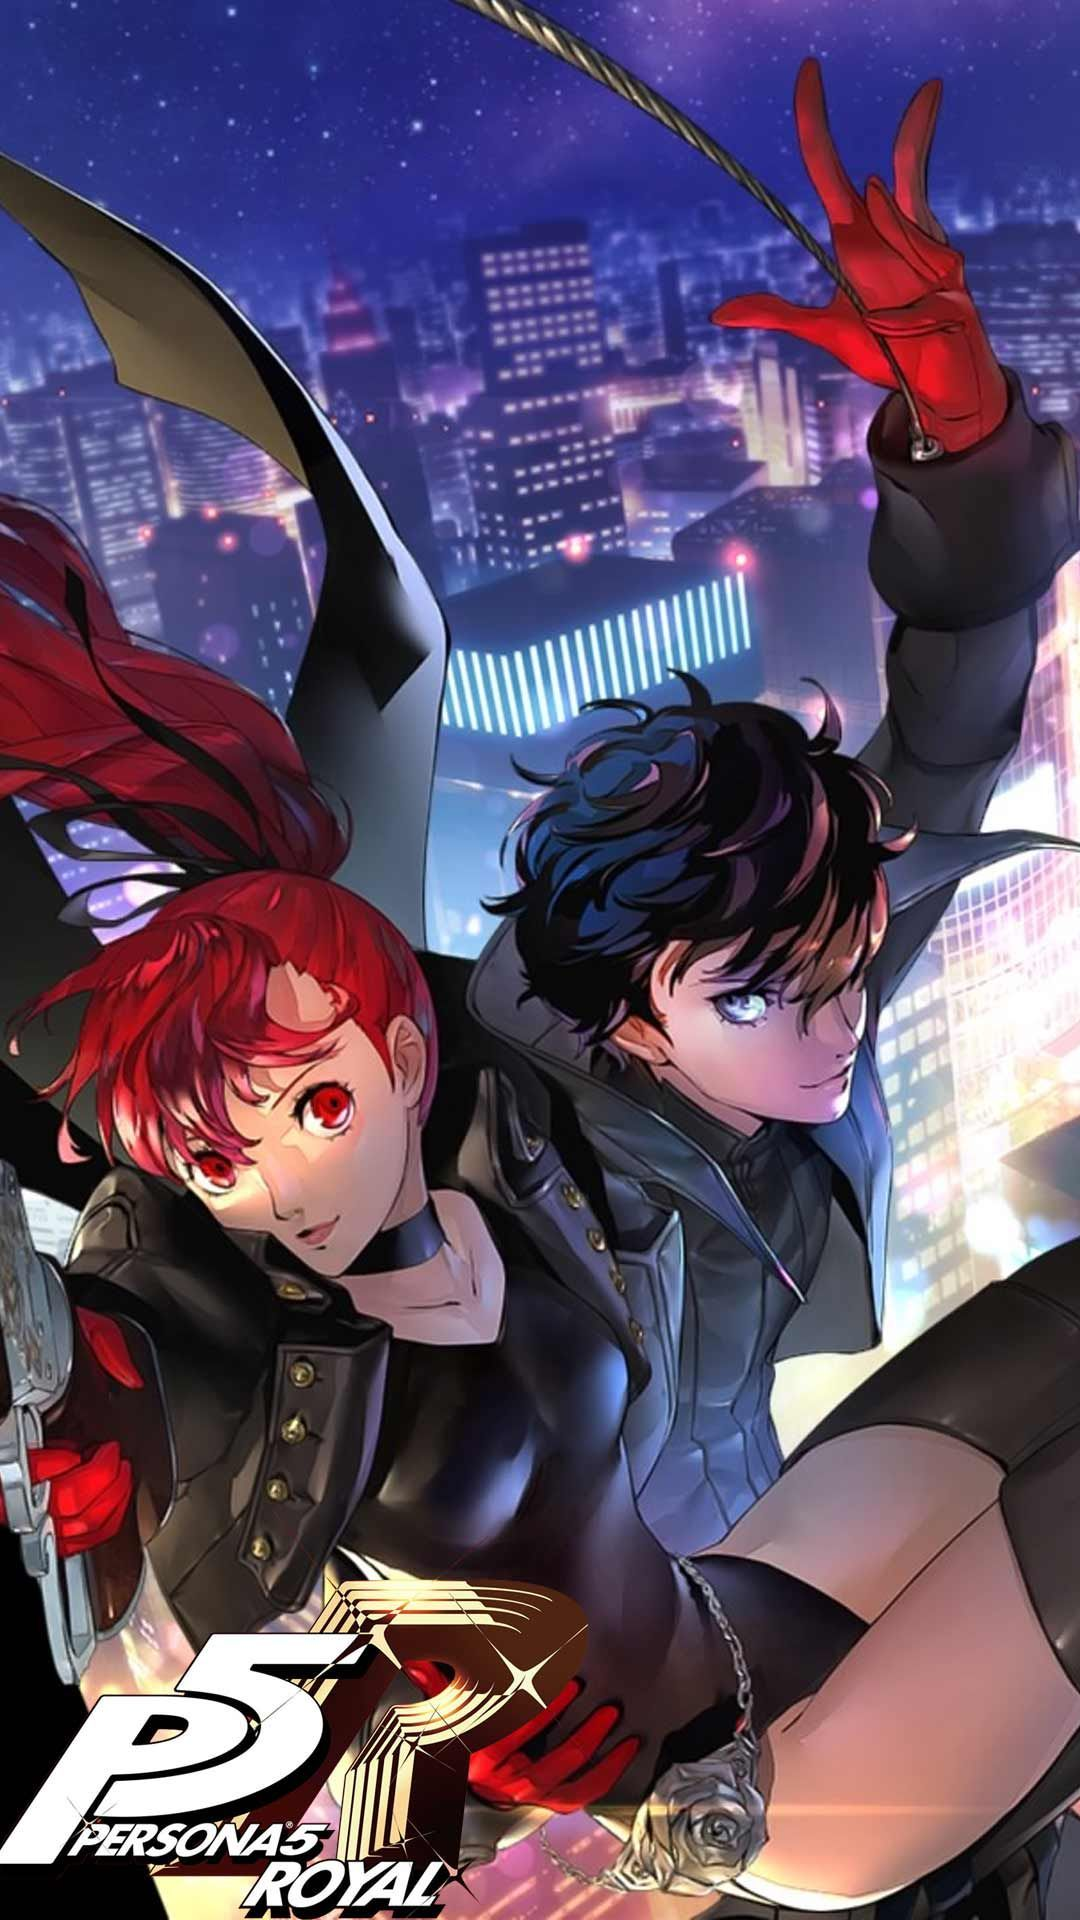 Persona 5 Royal Wallpaper Hd Phone Backgrounds Characters Logo Art Poster For Iphone Android Screen In 2020 Persona 5 Anime Persona 5 Joker Persona 5